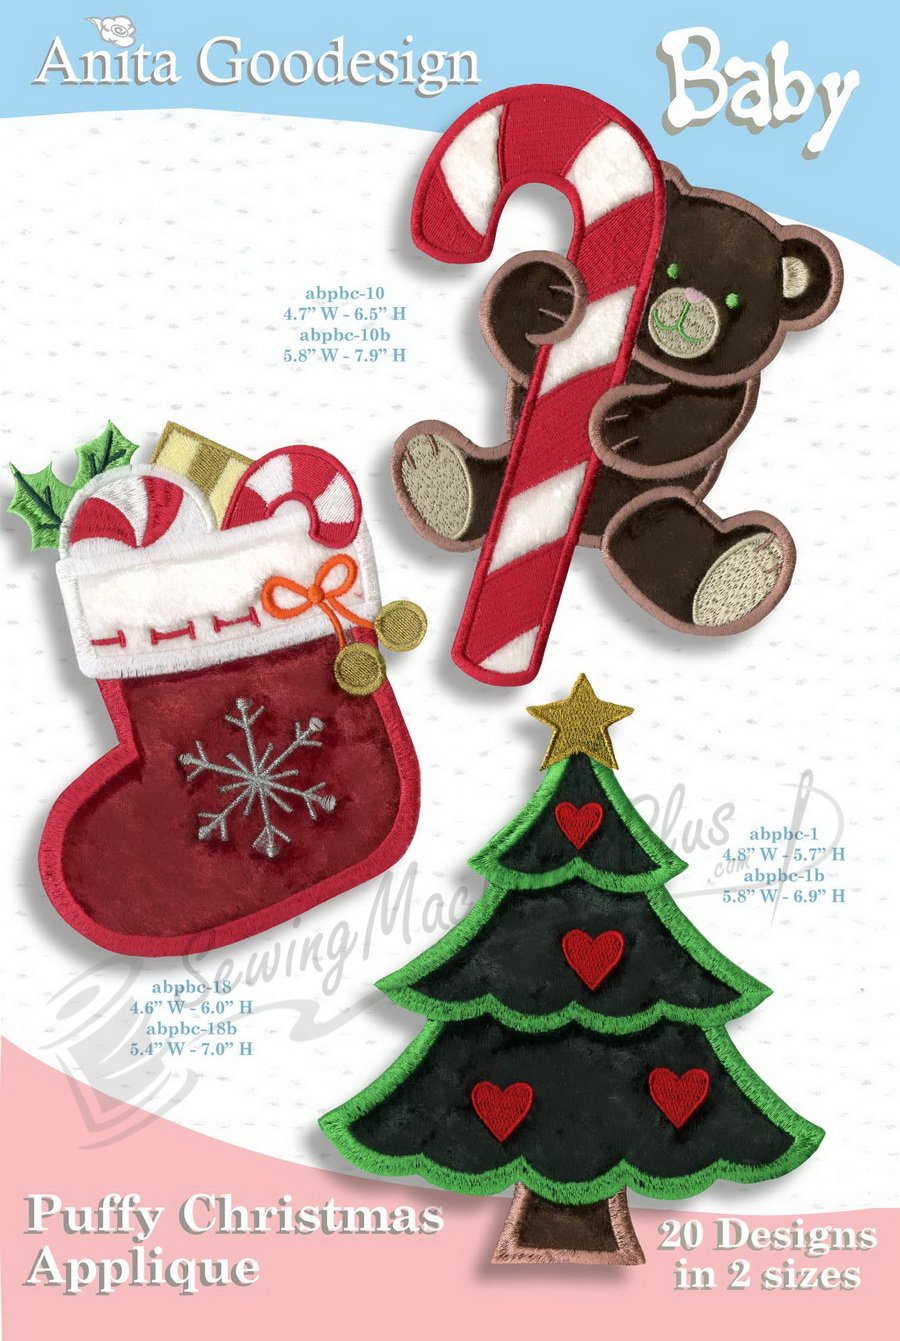 Puffy Christmas Applique Baby Collection